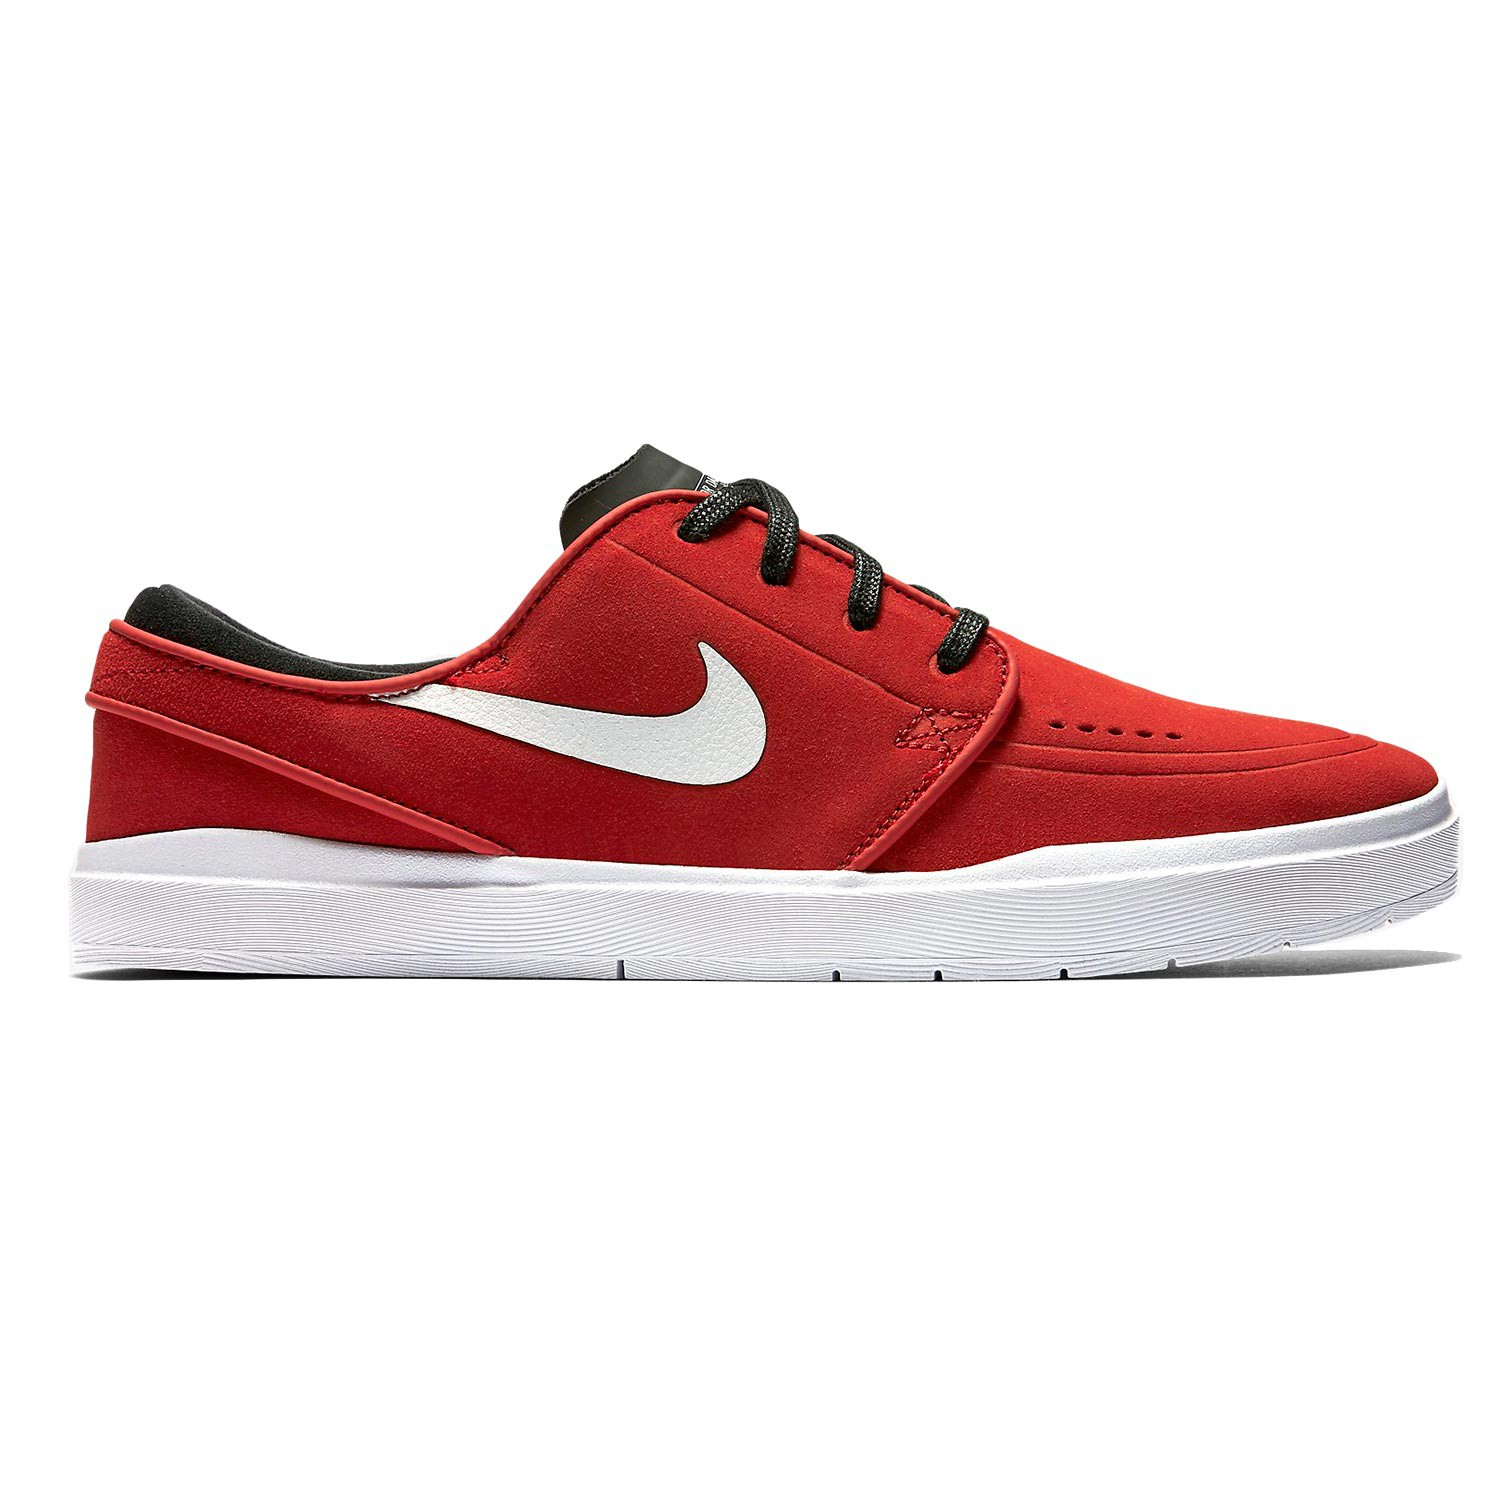 Tenisky Nike SB Stefan Janoski Hyperfeel university red/white-black